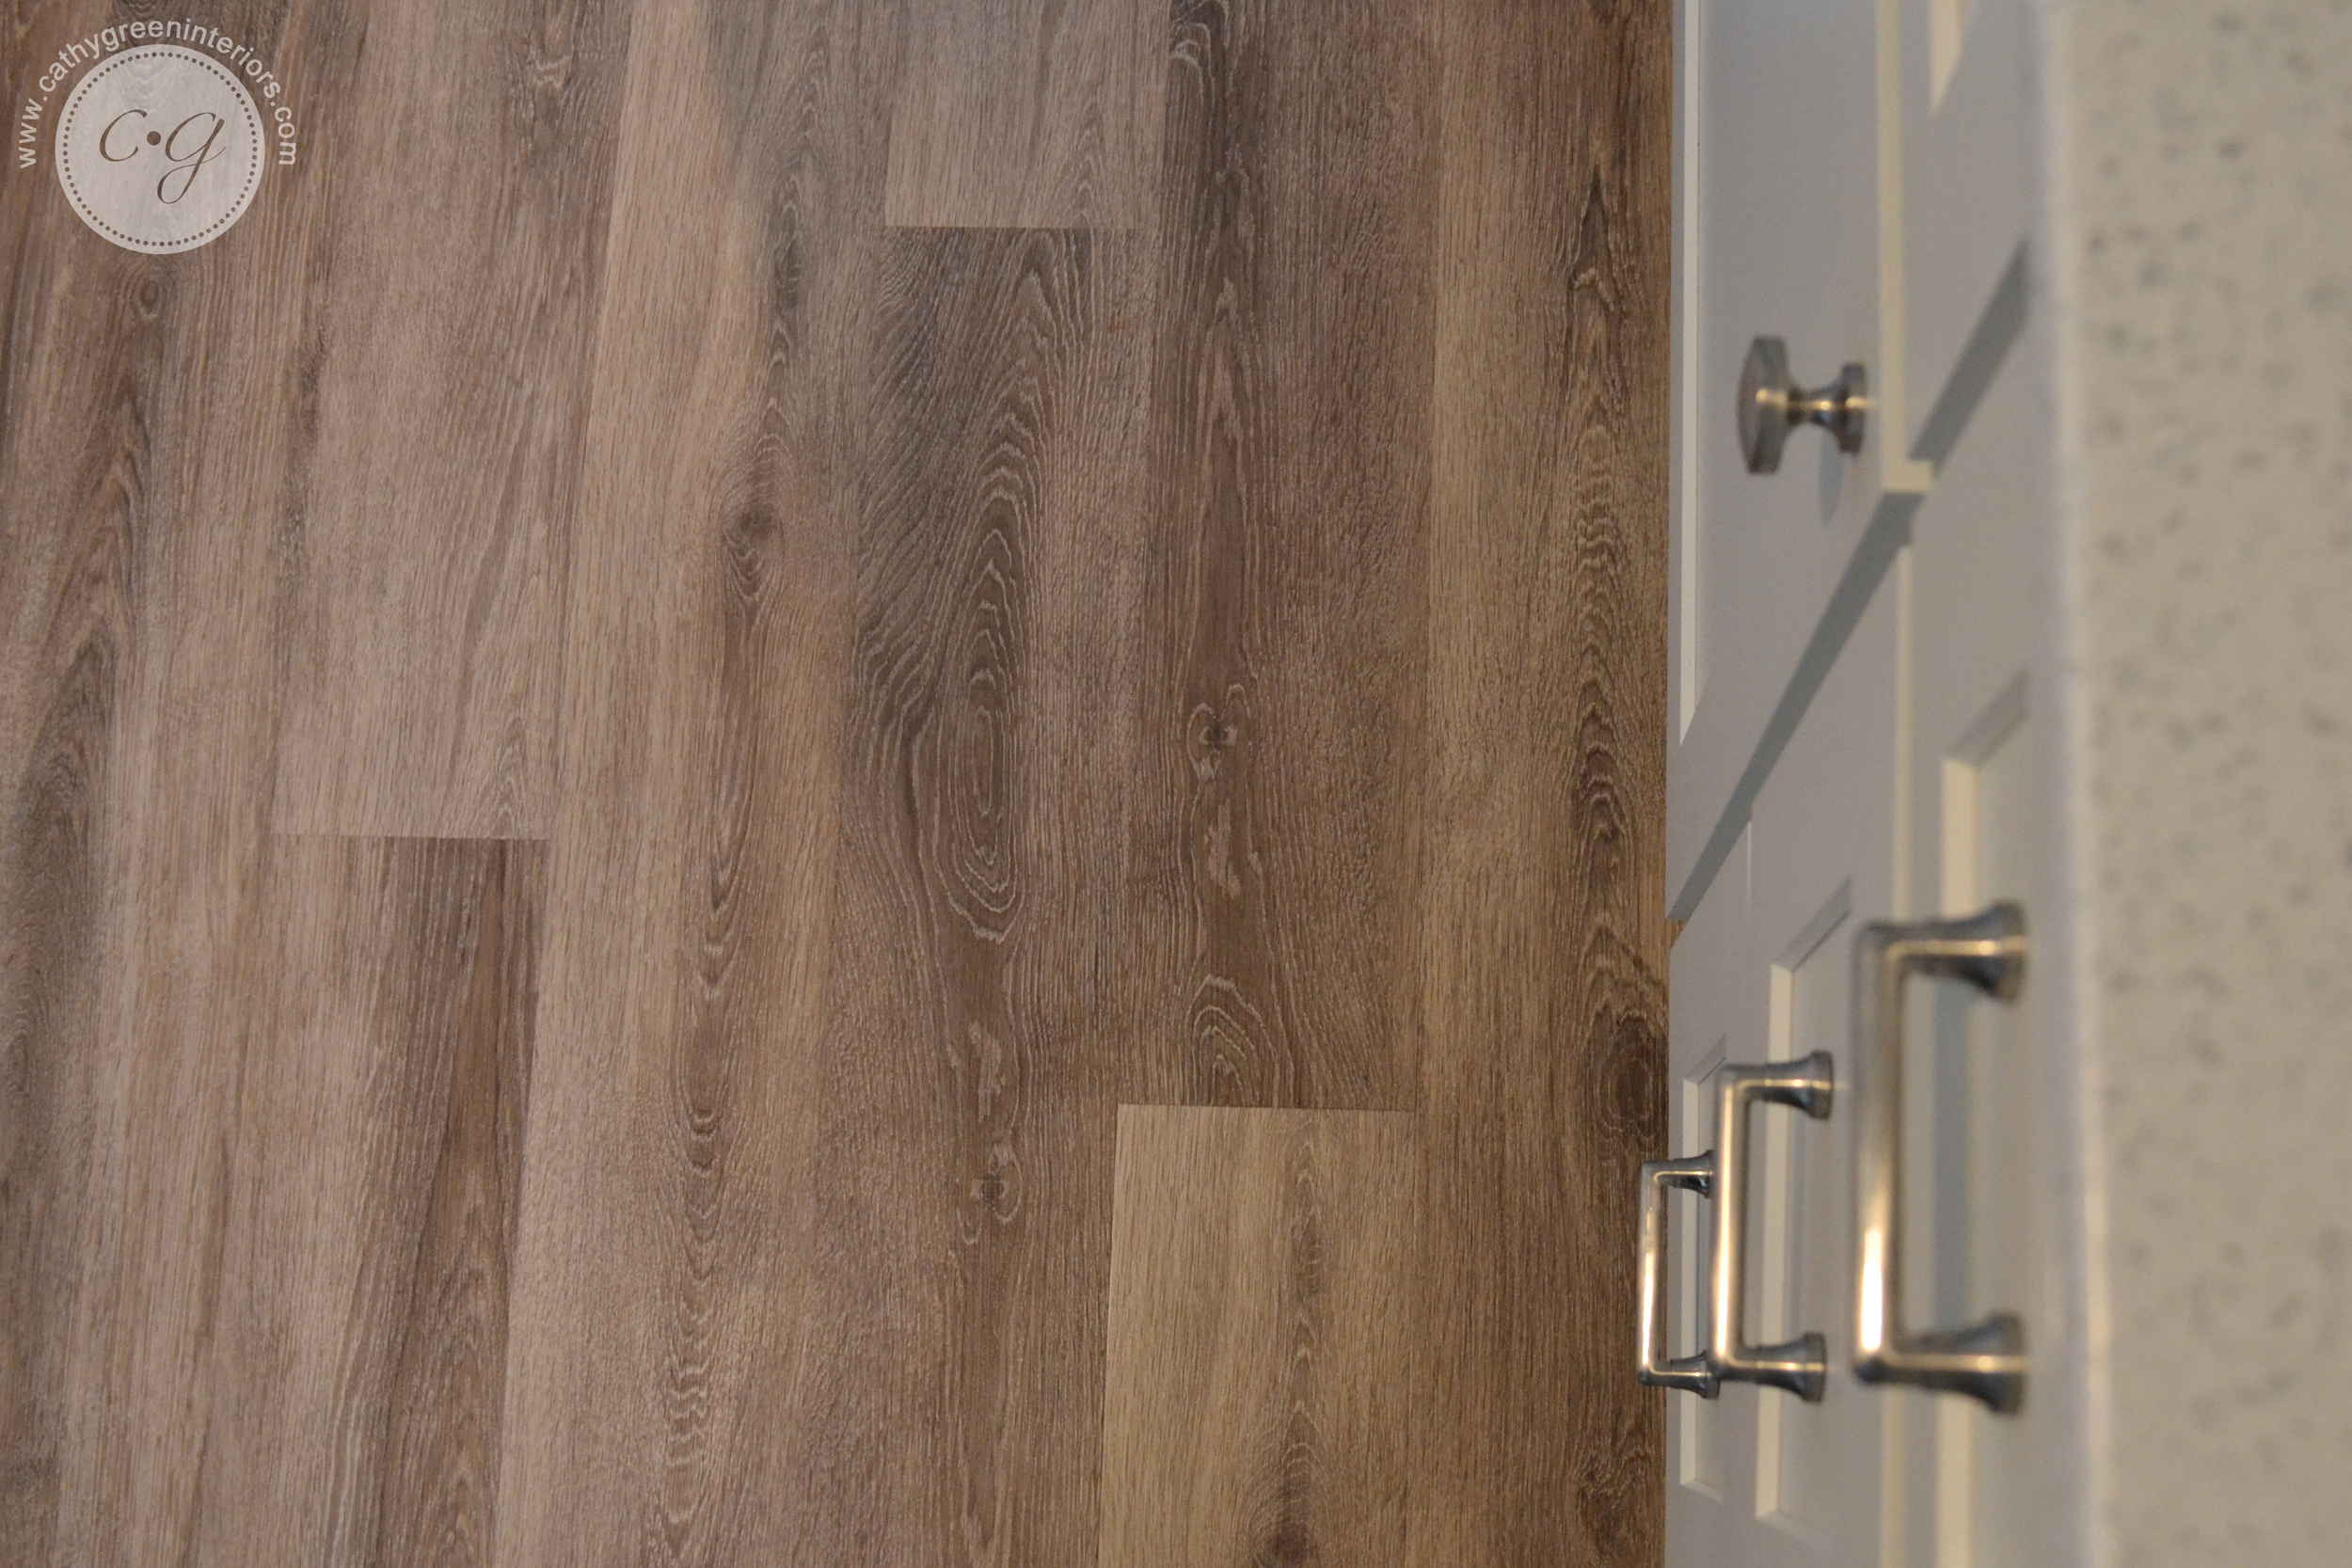 Luxury Vinyl Plank wood-look flooring